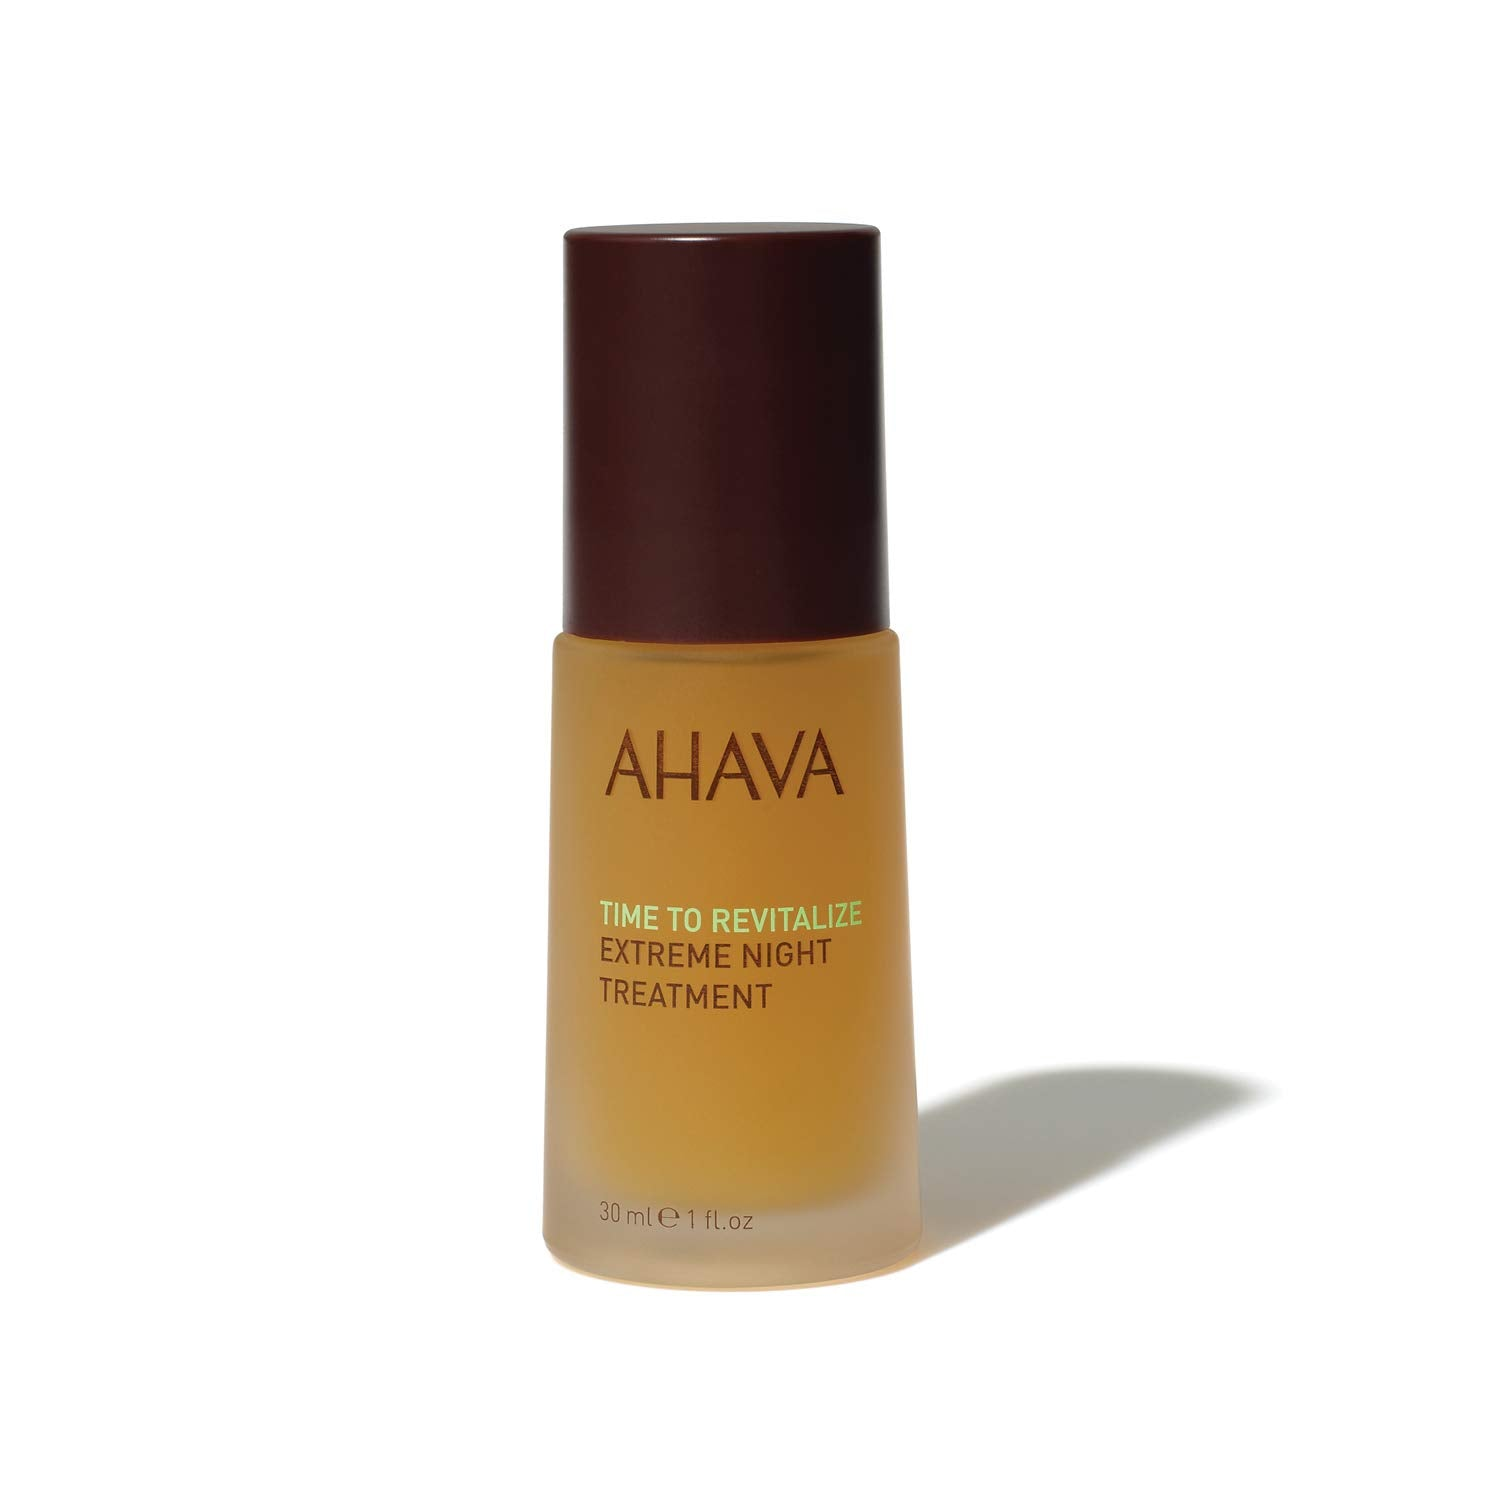 AHAVA Dead Sea Mineral Time to Revitalize Extreme Night Treatment, 1oz / 30 ml